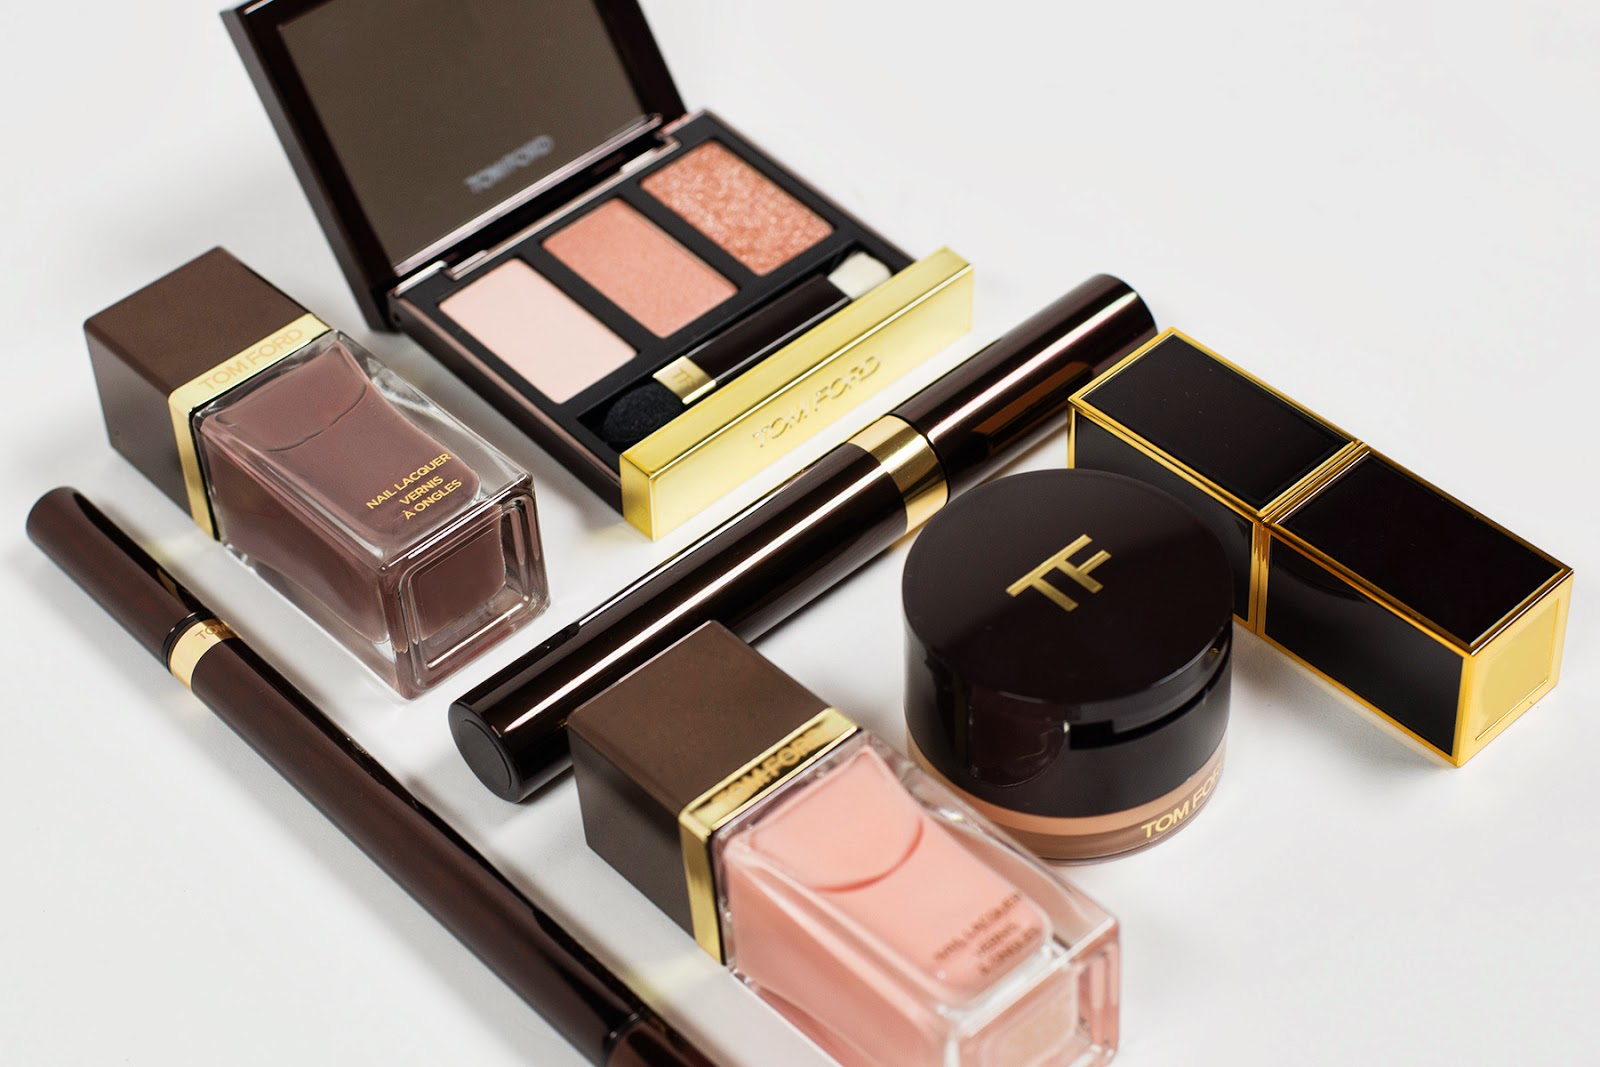 Tom ford Makeup for Summer 2014